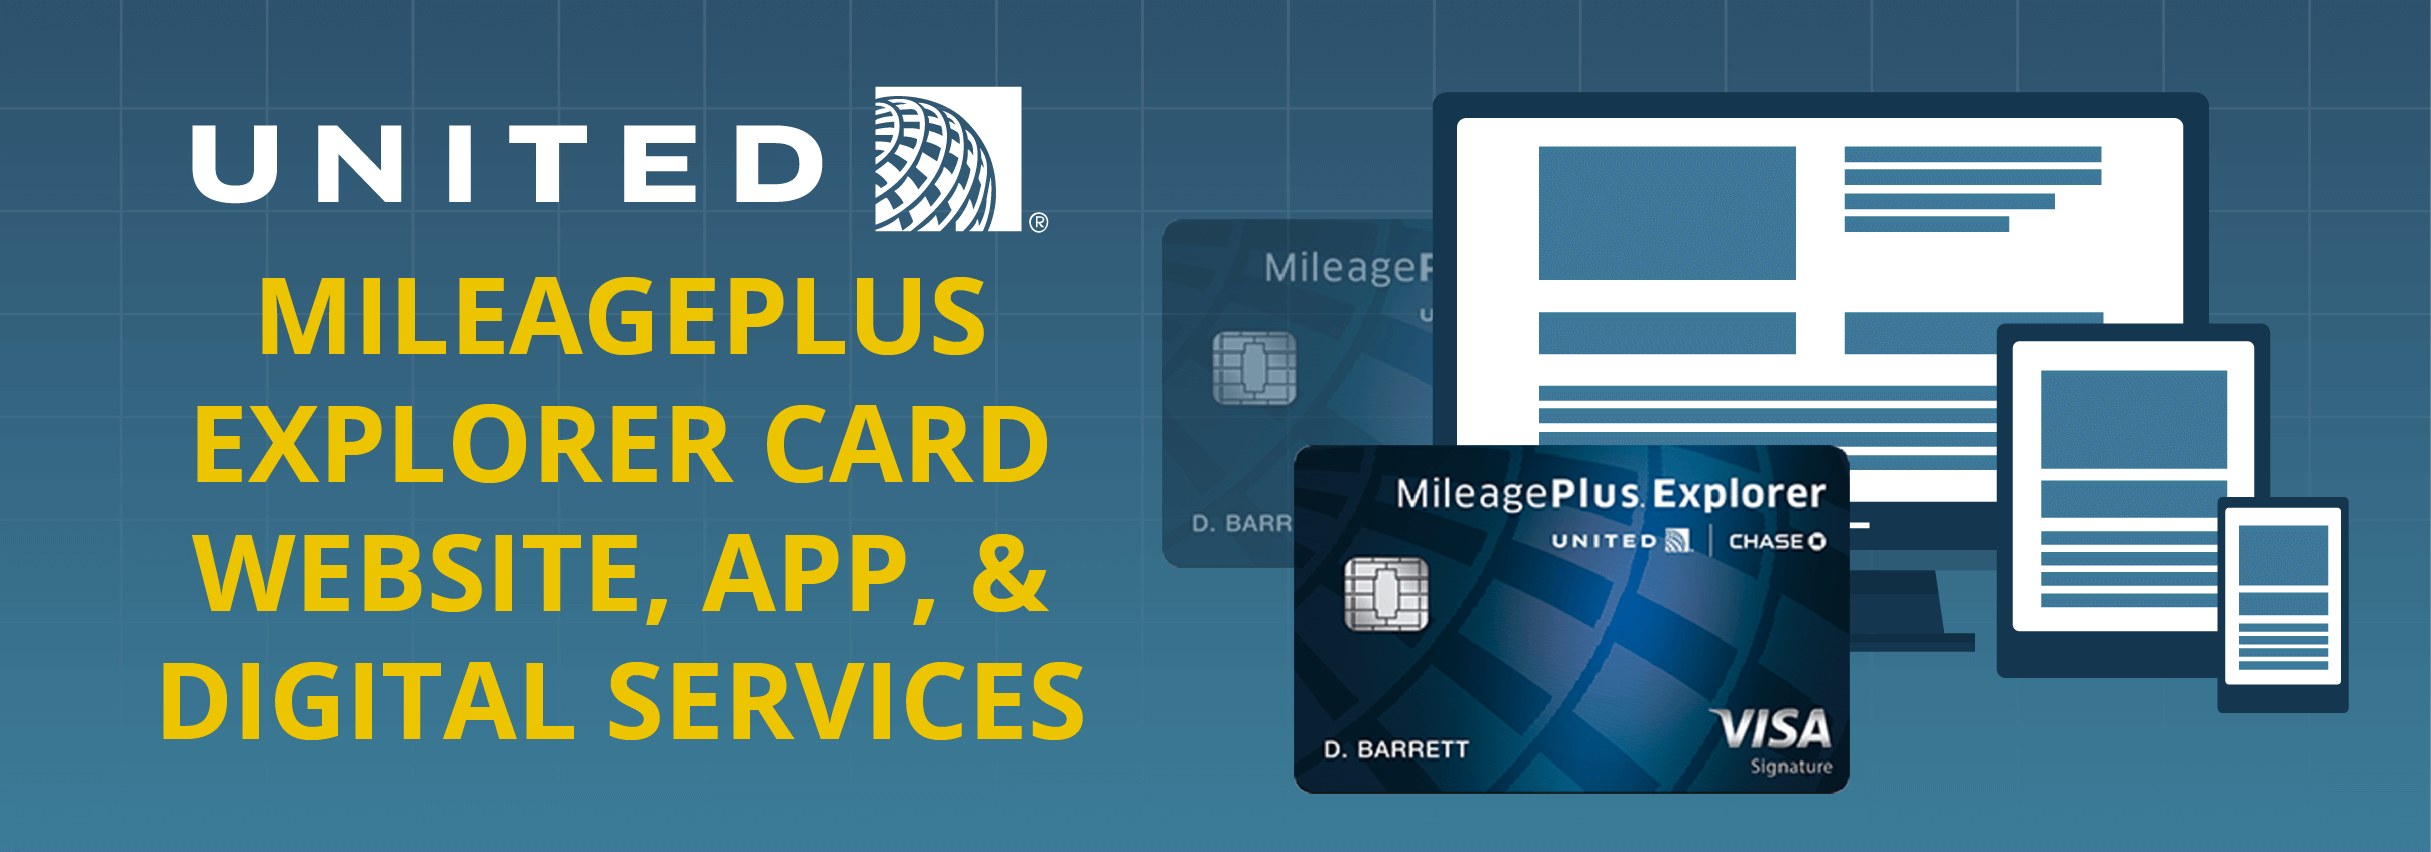 United Mileage Plus Explorer Credit Card Review - CreditLoan.com®